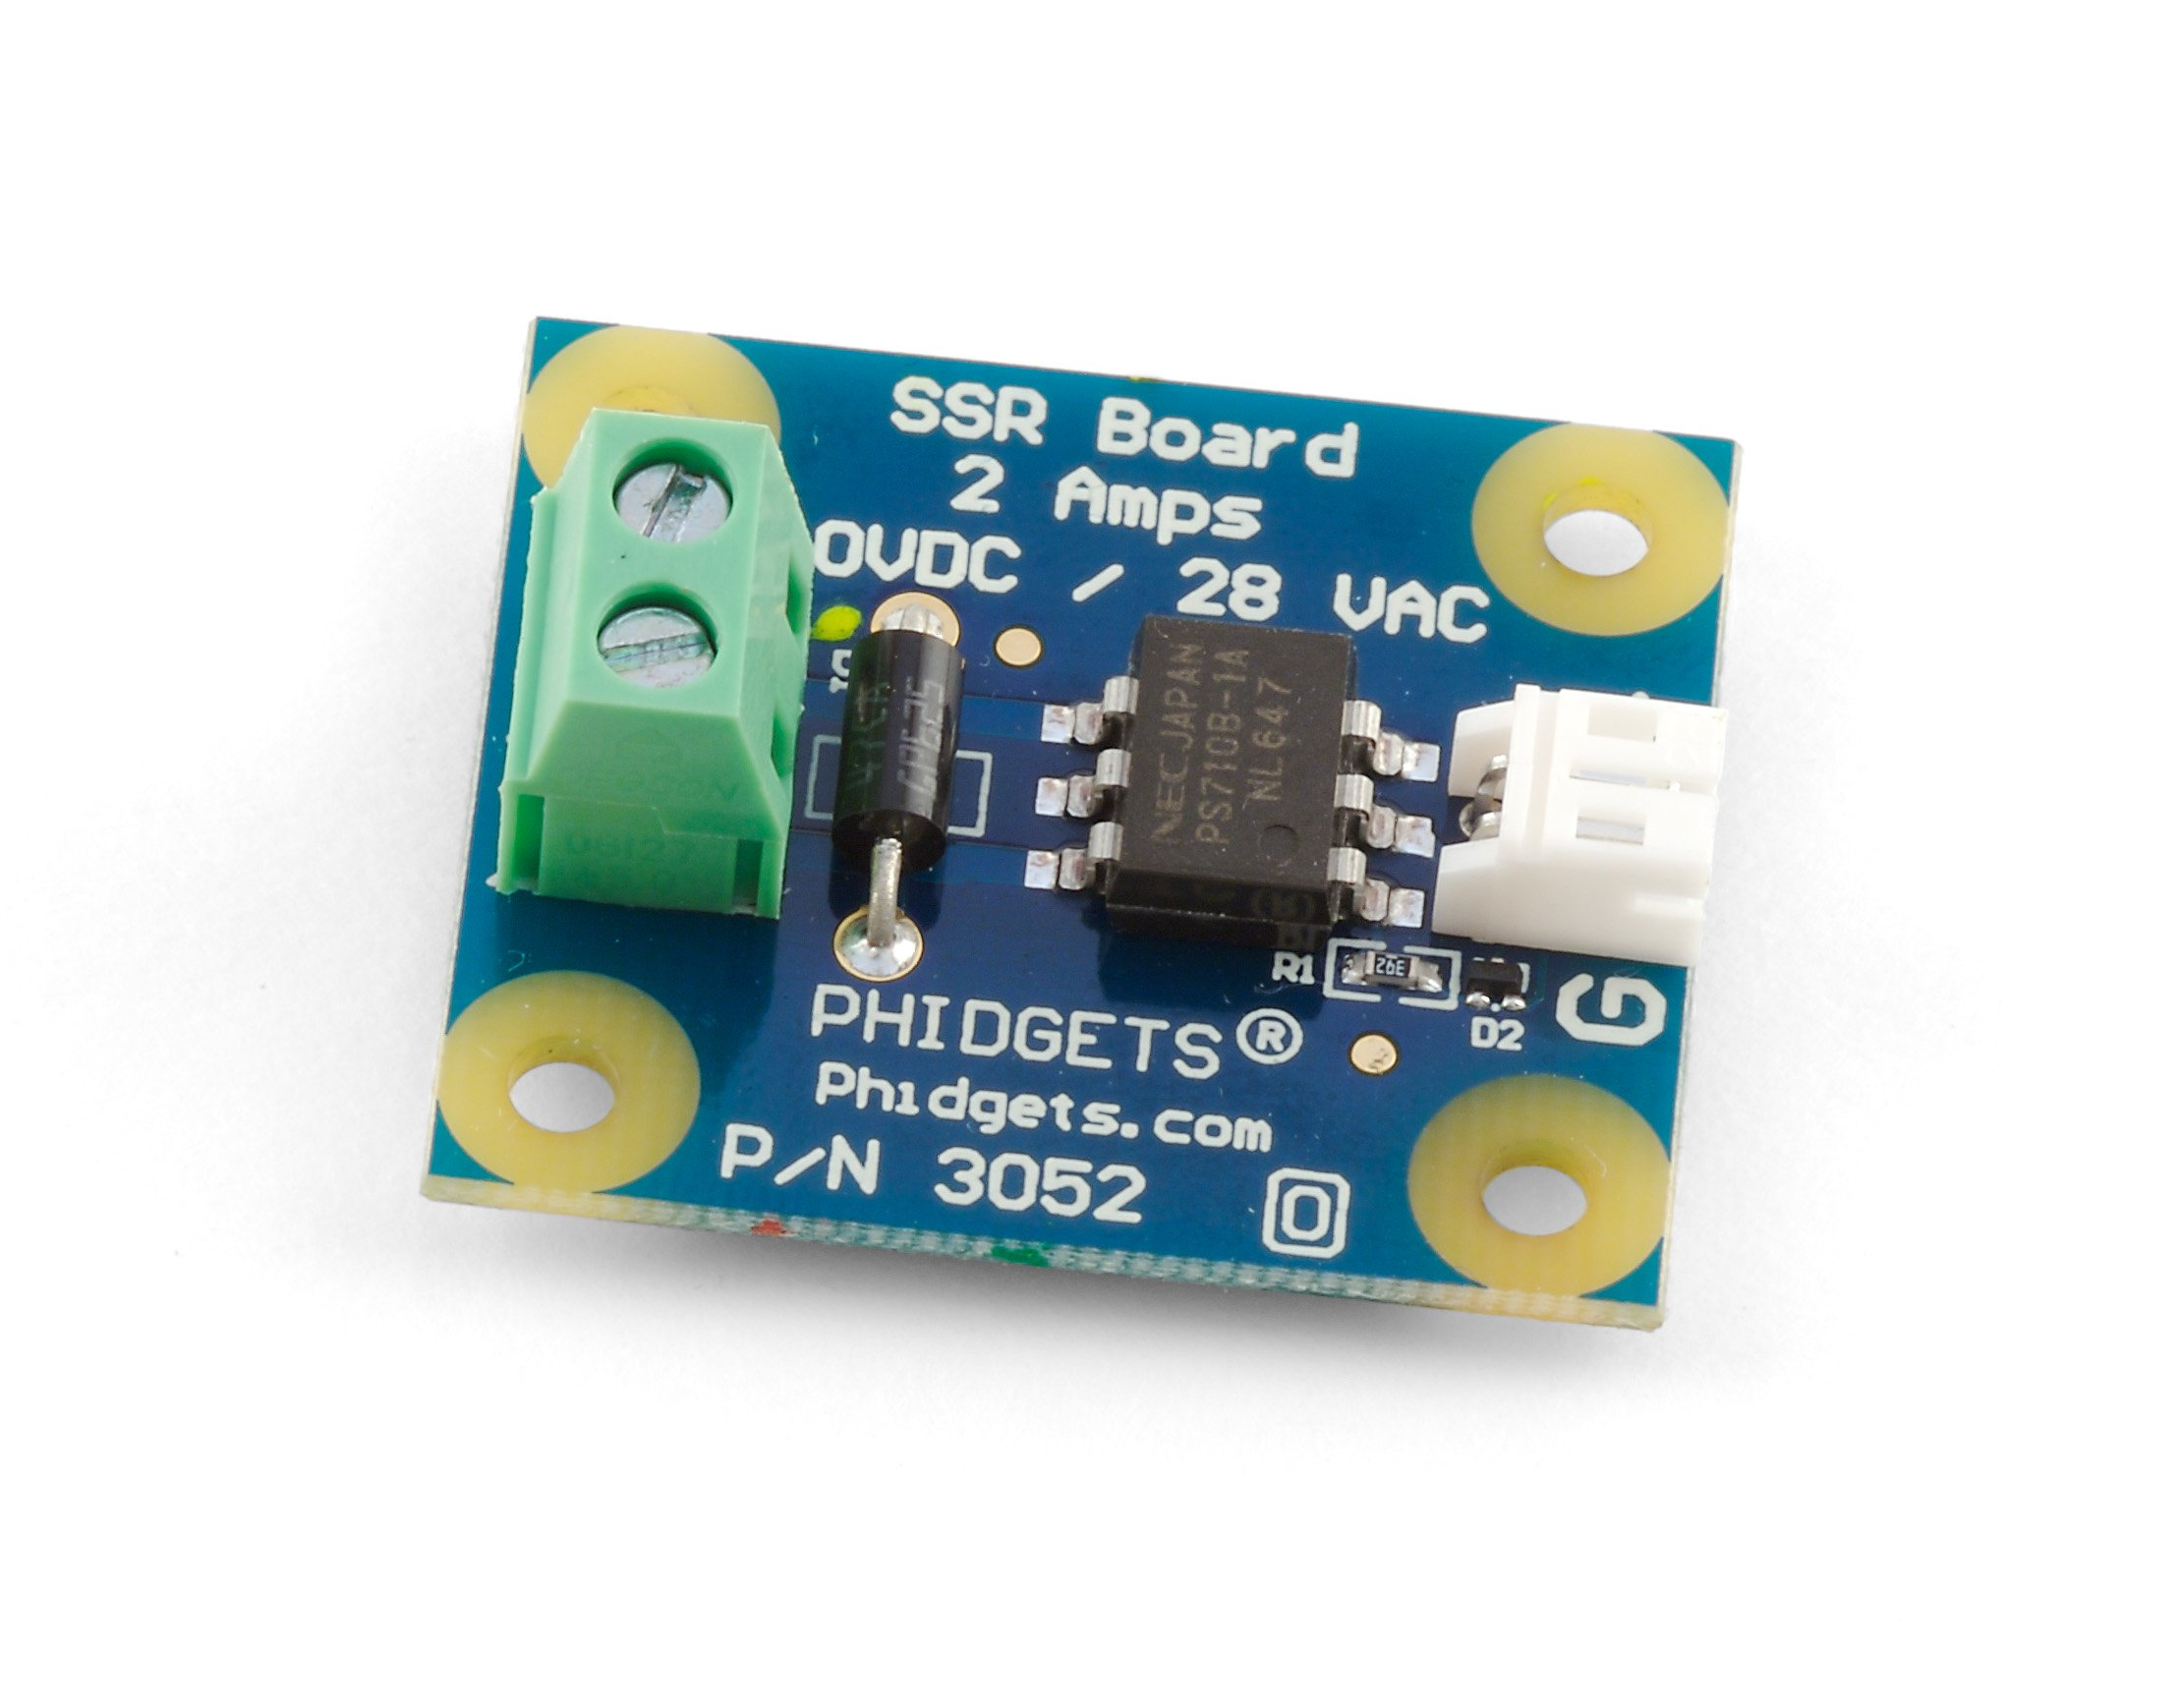 SSR Relay Board - 3052_0 at Phidgets